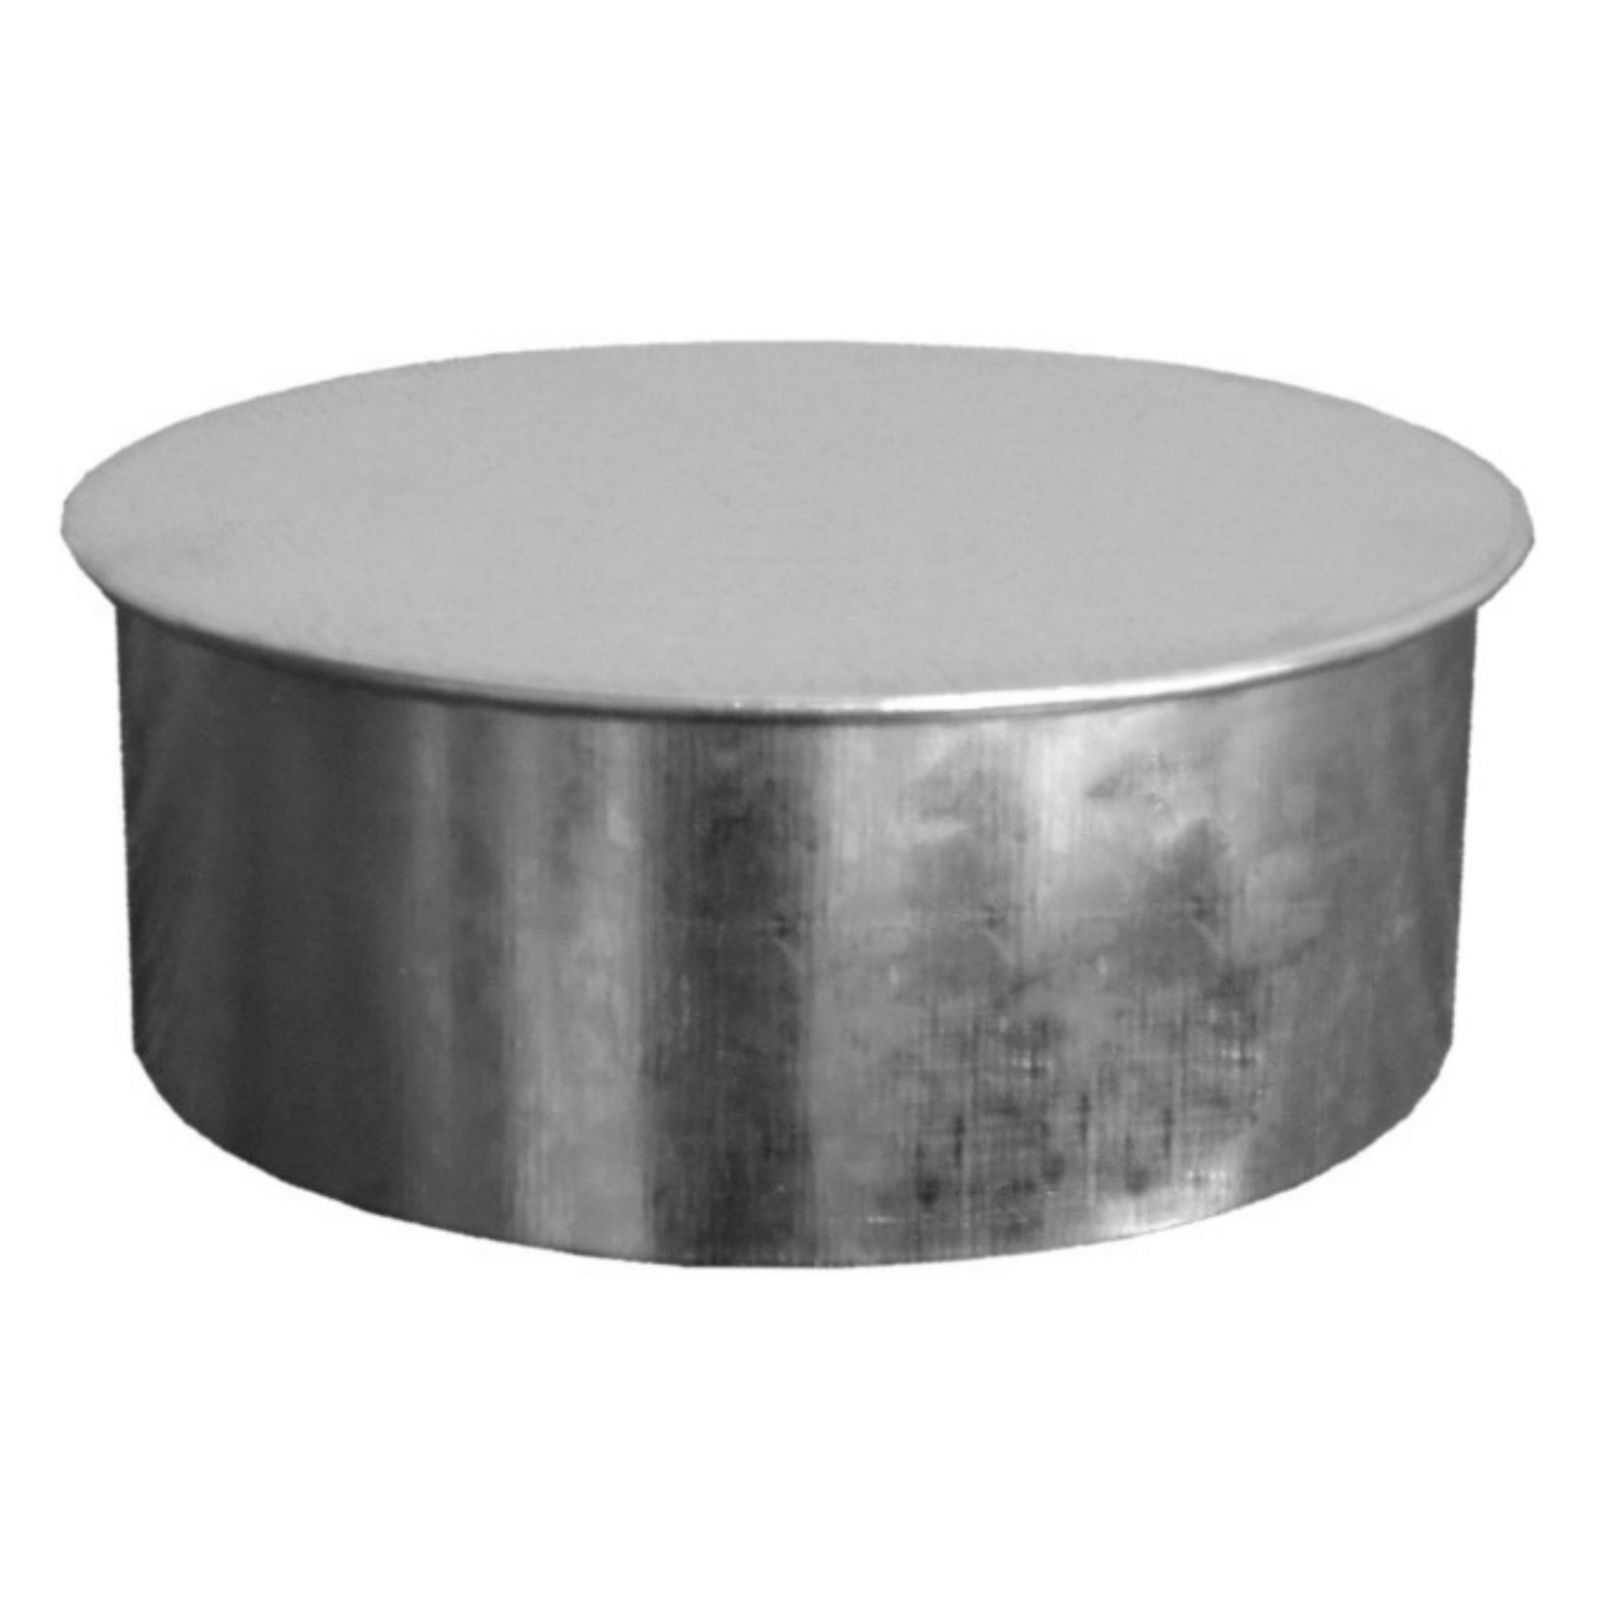 "Snappy 64-12 - # Tee Cap 12"" No Crimp"